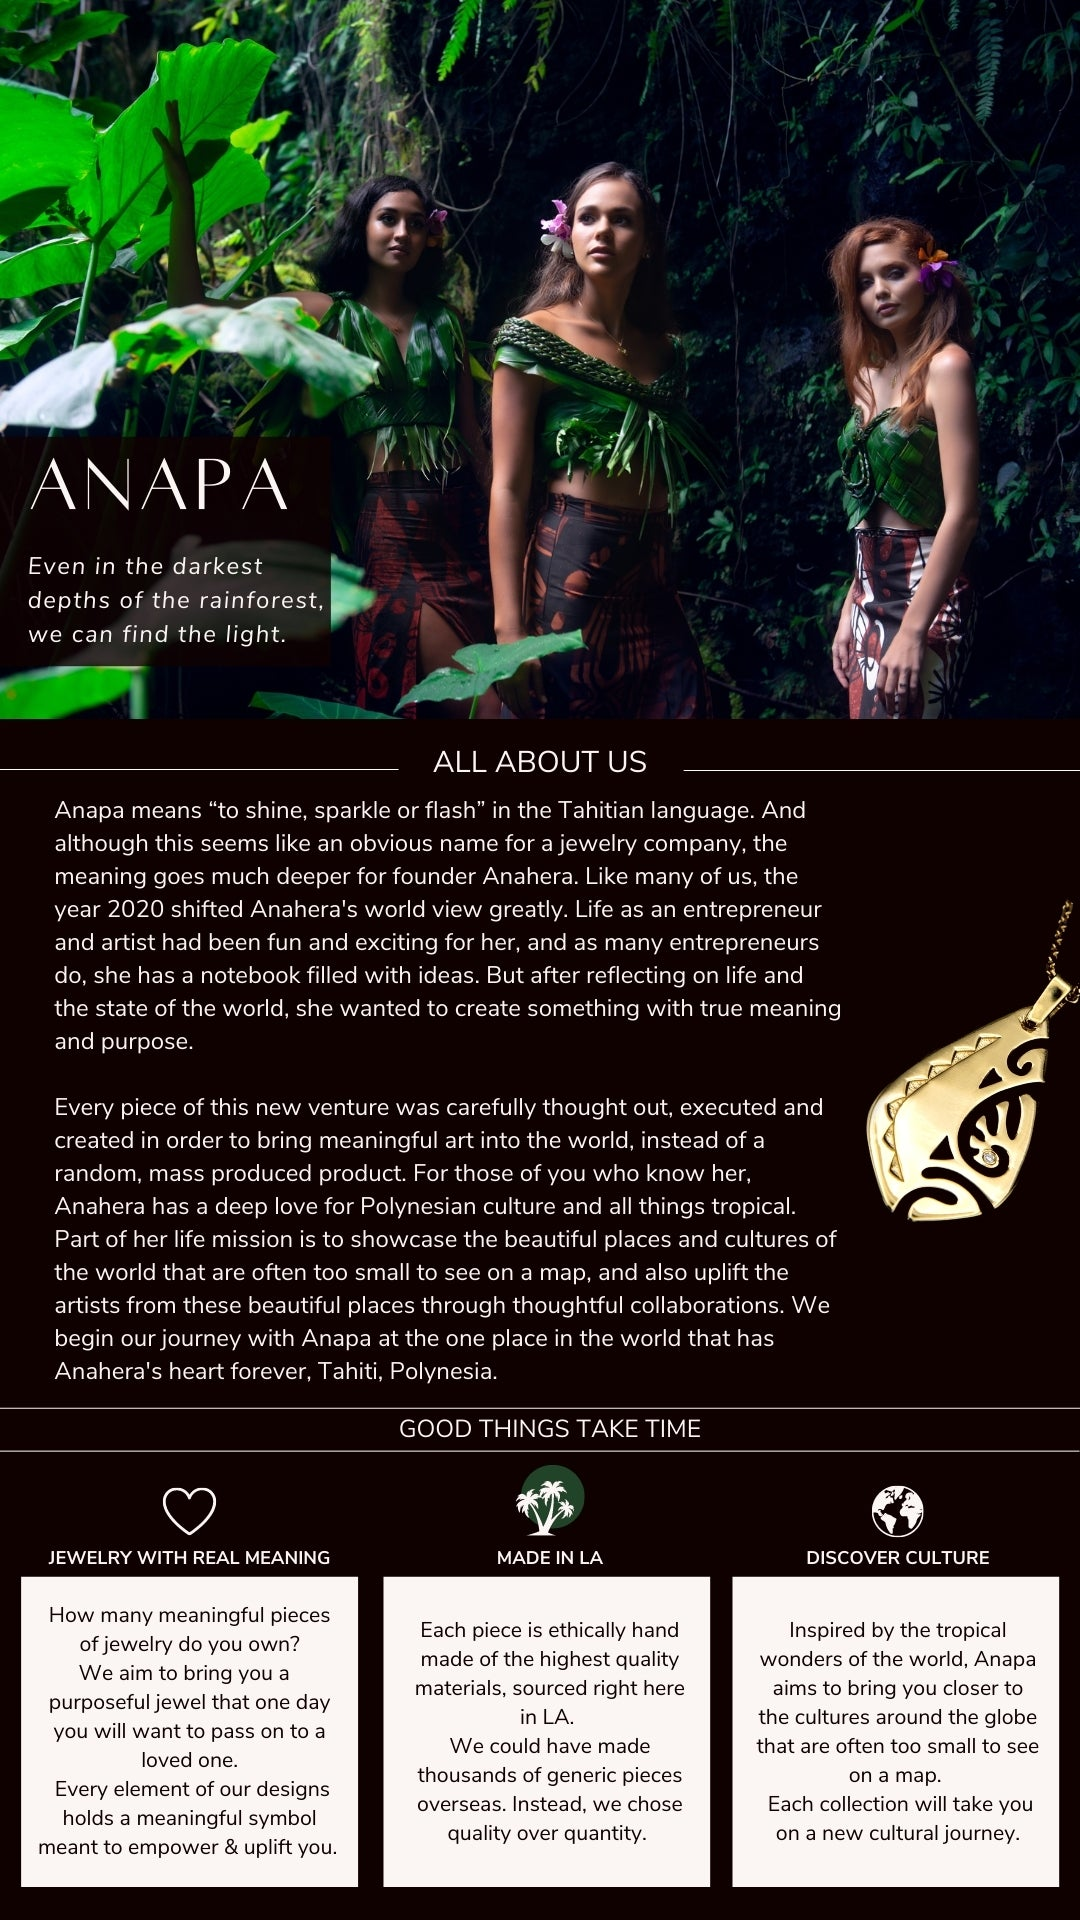 """Even in the darkest depths of the rainforest, we can find the light. All about us. Anapa means """"to shine, sparkle or flash"""" in the Tahitian language. And although this seems like an obvious name for a jewelry company, the meaning goes much deeper for founder Anahera. Like many of us, the year 2020 shifted Anahera's world view greatly. Life as an entrepreneur and artist had been fun and exciting for her, and as many entrepreneurs do, she has a notebook filled with ideas. But after reflecting on life and the state of the world, she wanted to create something with true meaning and purpose.  Every piece of this new venture was carefully thought out, executed and created in order to bring meaningful art into the world, instead of a random, mass produced product. For those of you who know her, Anahera has a deep love for Polynesian culture and all things tropical. Part of her life mission is to showcase the beautiful places and cultures of the world that are often too small to see on a map, and also uplift the artists from these beautiful places through thoughtful collaborations. We begin our journey with Anapa at the one place in the world that has Anahera's heart forever, Tahiti, Polynesia.  Jewelry with real Meaning. How many meaningful pieces of jewelry do you own? We aim to bring you a  purposeful jewel that one day you will want to pass on to a loved one.  Every element of our designs holds a meaningful symbol meant to empower & uplift you. Made in LA. Each piece is ethically hand made of the highest quality materials, sourced right here in LA.  We could have made thousands of generic pieces overseas. Instead, we chose quality over quantity. Discover Culture. Inspired by the tropical wonders of the world, Anapa aims to bring you closer to the cultures around the globe that are often too small to see on a map.   Each collection will take you on a new cultural journey."""